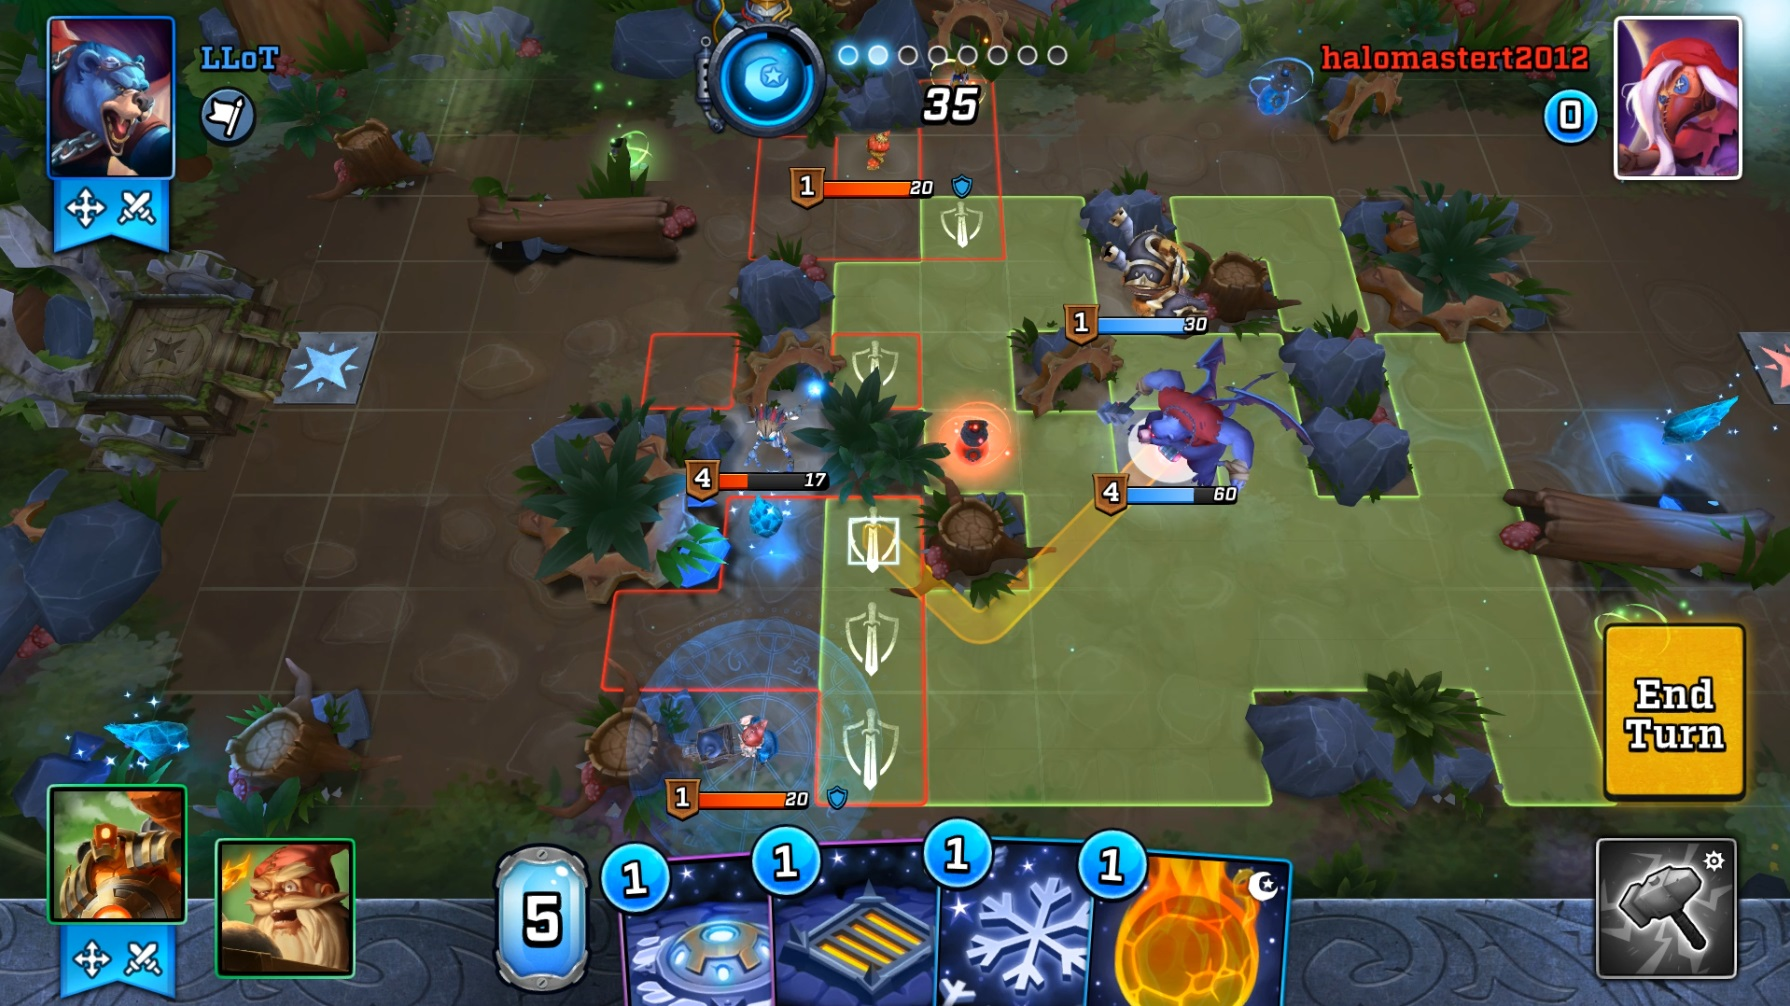 Prove your tactical prowess in Little Lords of Twilight, soft-launching soon in Europe